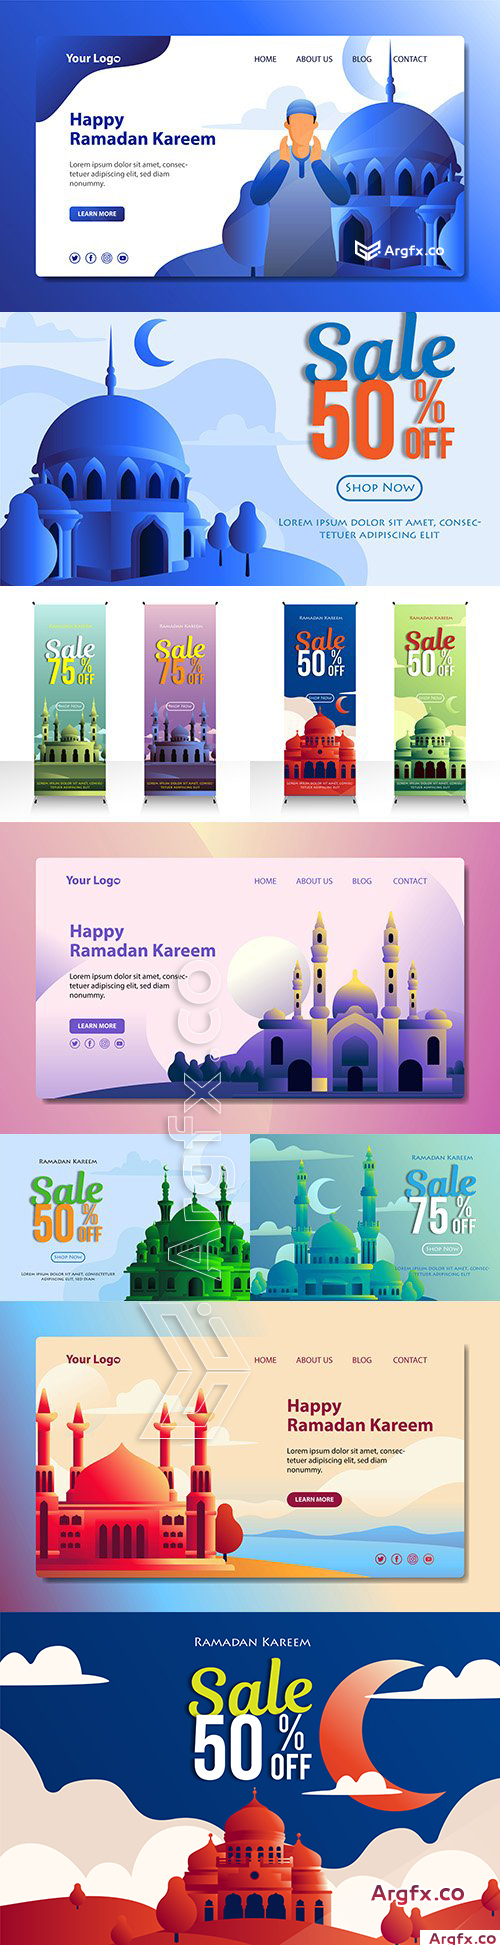 Ramadan sales and landing page mosque illustration